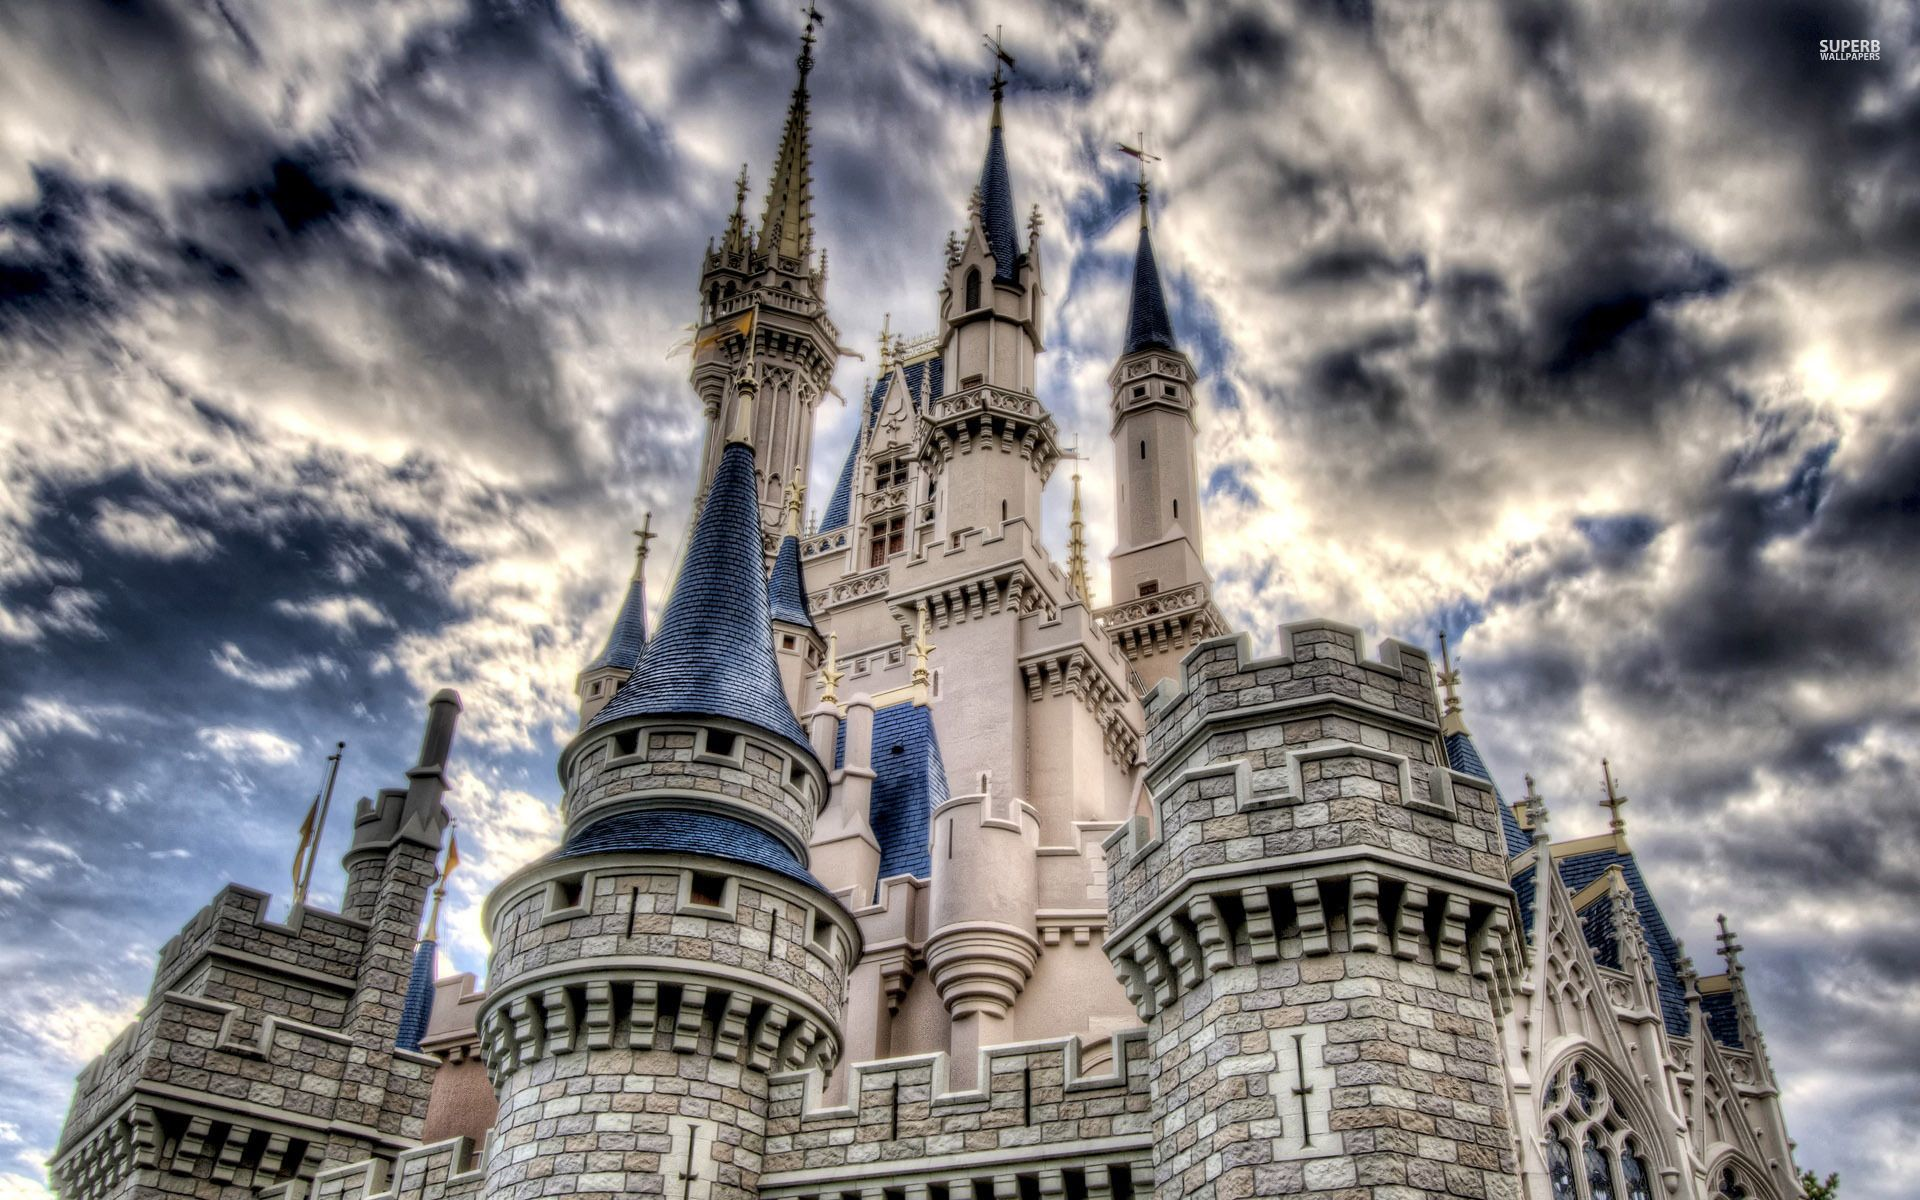 Charming Disney Castle Desktop Wallpaper